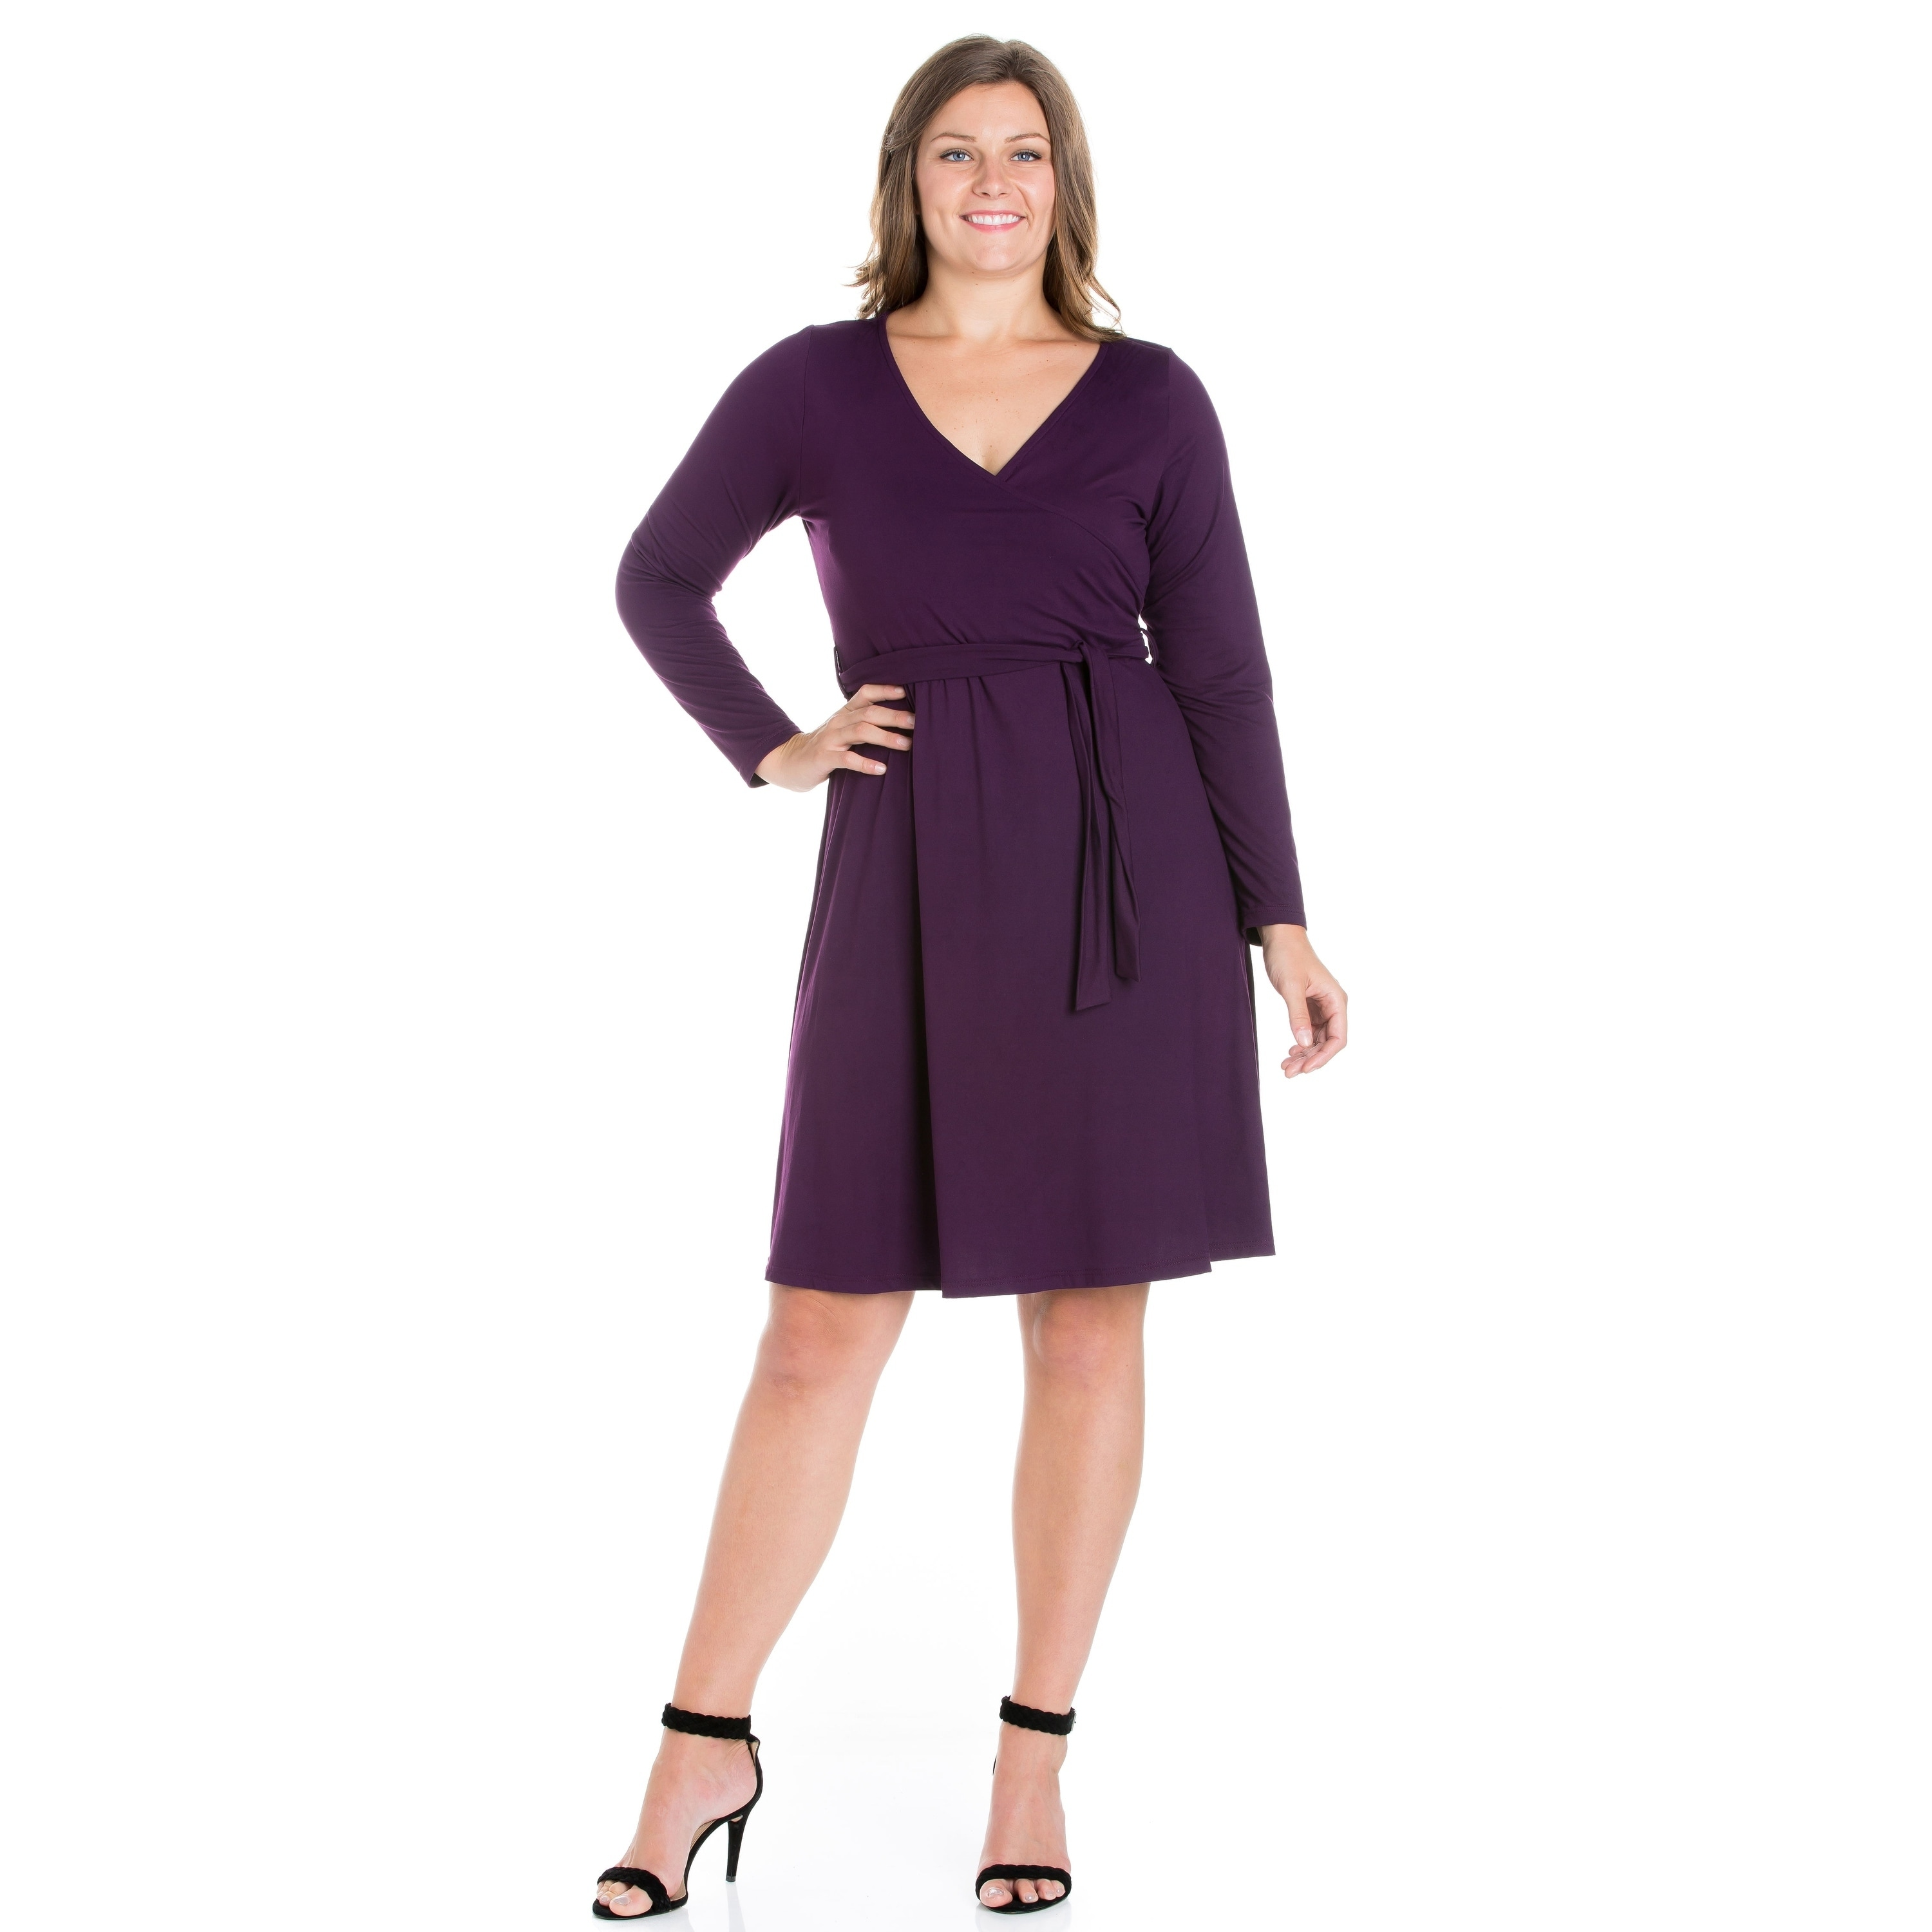 163b33894e Shop 24/7 Comfort Apparel Long Sleeve Plus Size Wrap Dress - Free Shipping  On Orders Over $45 - Overstock - 23610932